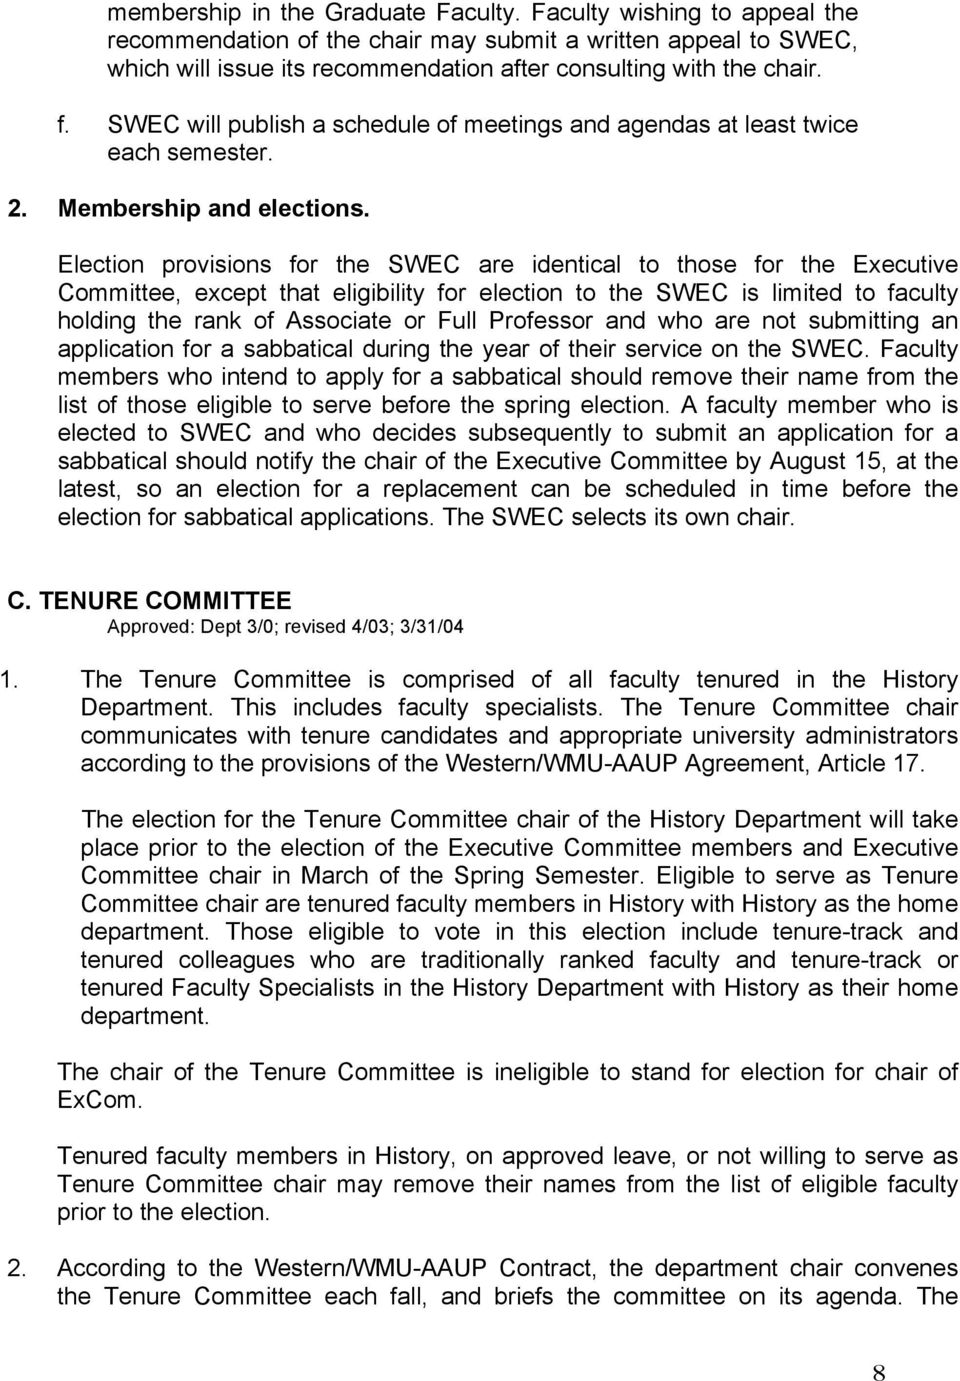 Election provisions for the SWEC are identical to those for the Executive Committee, except that eligibility for election to the SWEC is limited to faculty holding the rank of Associate or Full